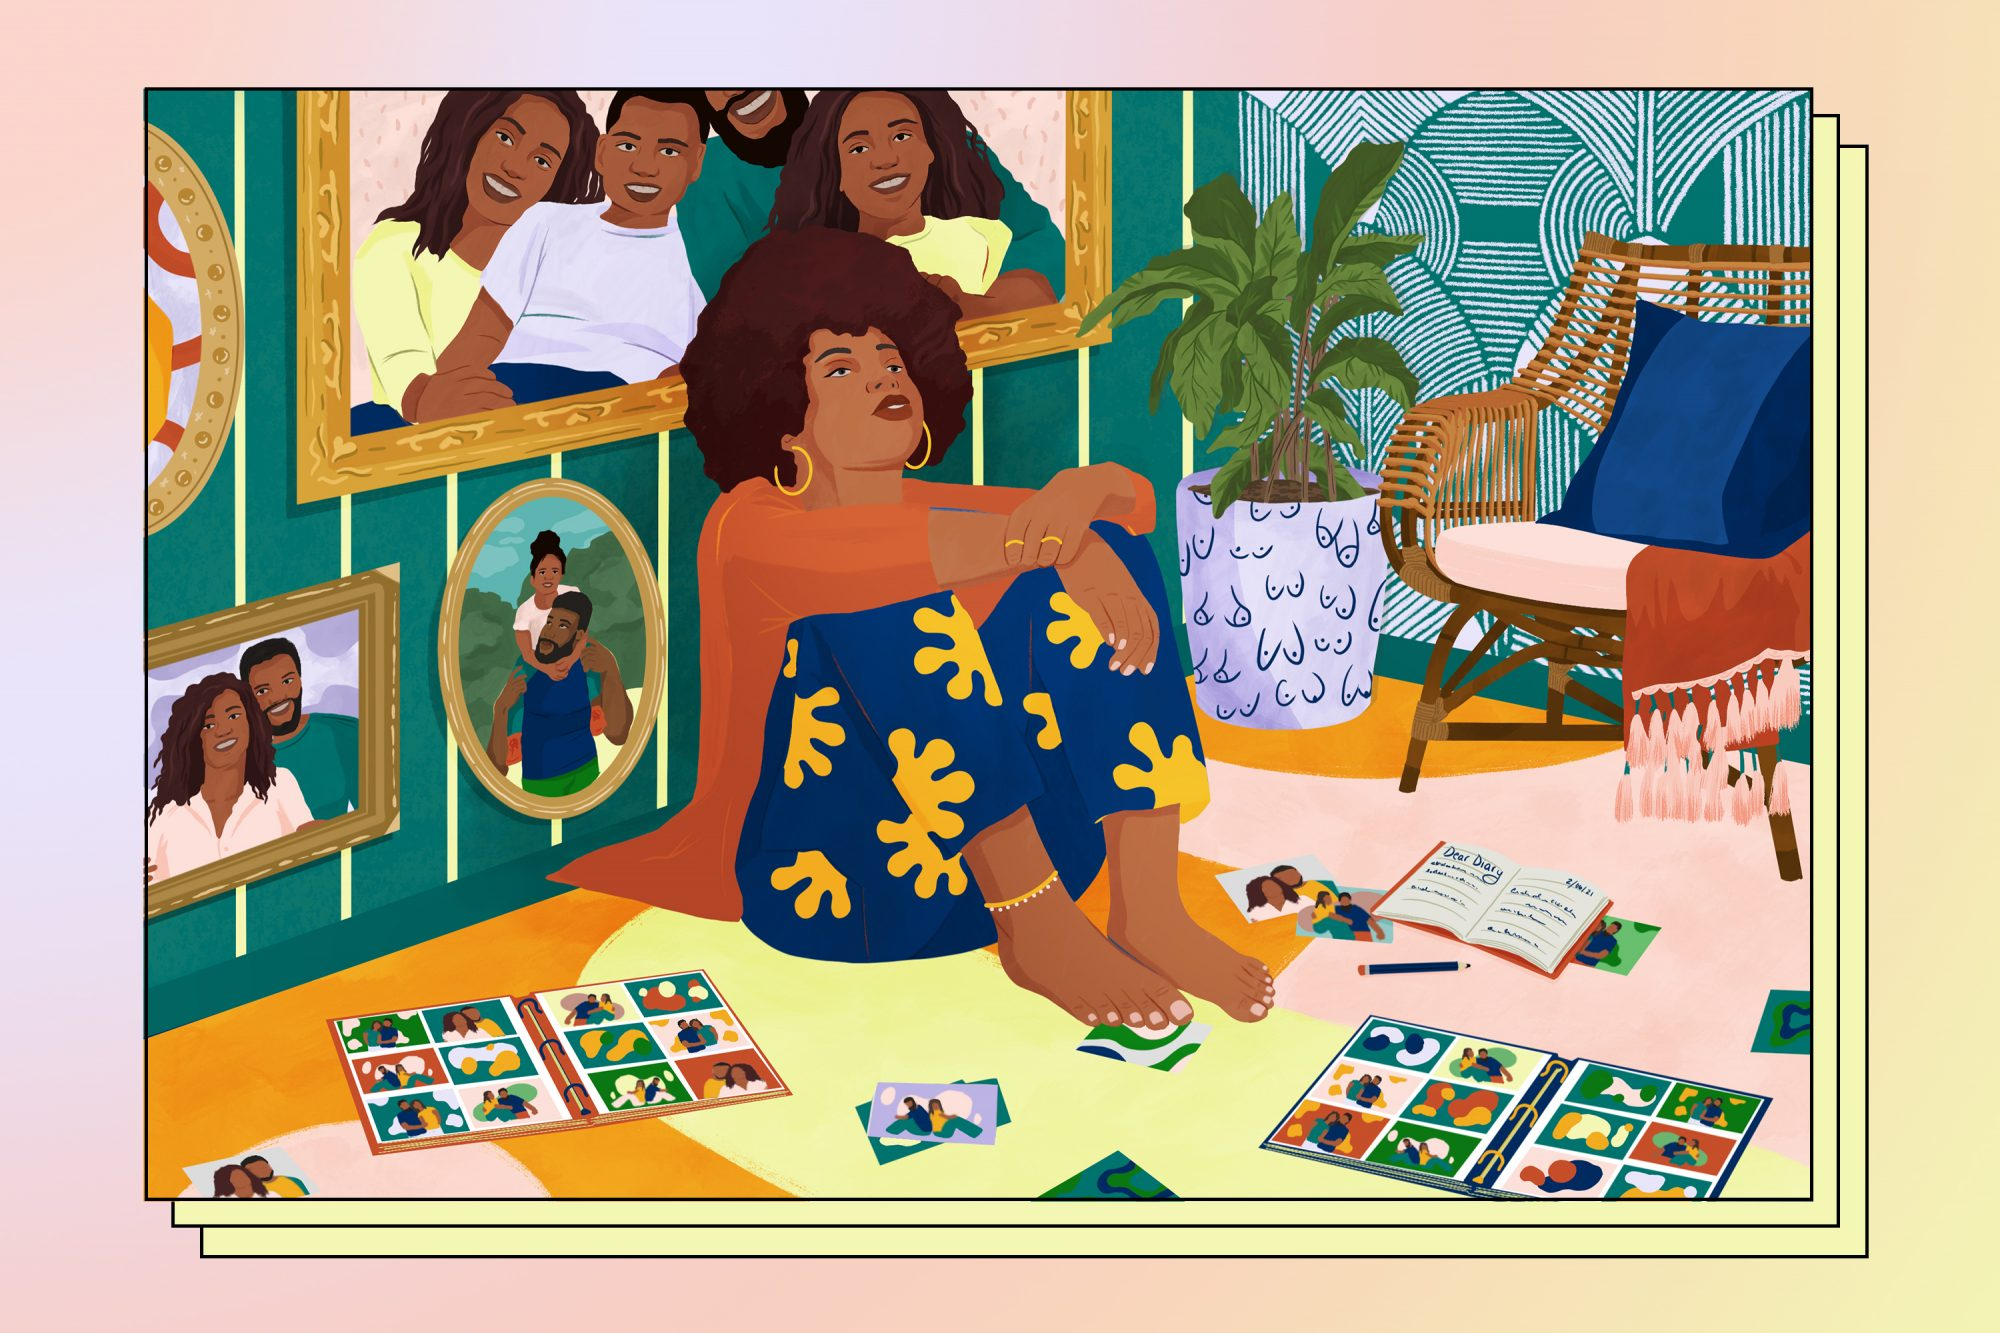 Graphic of woman sitting with family photos